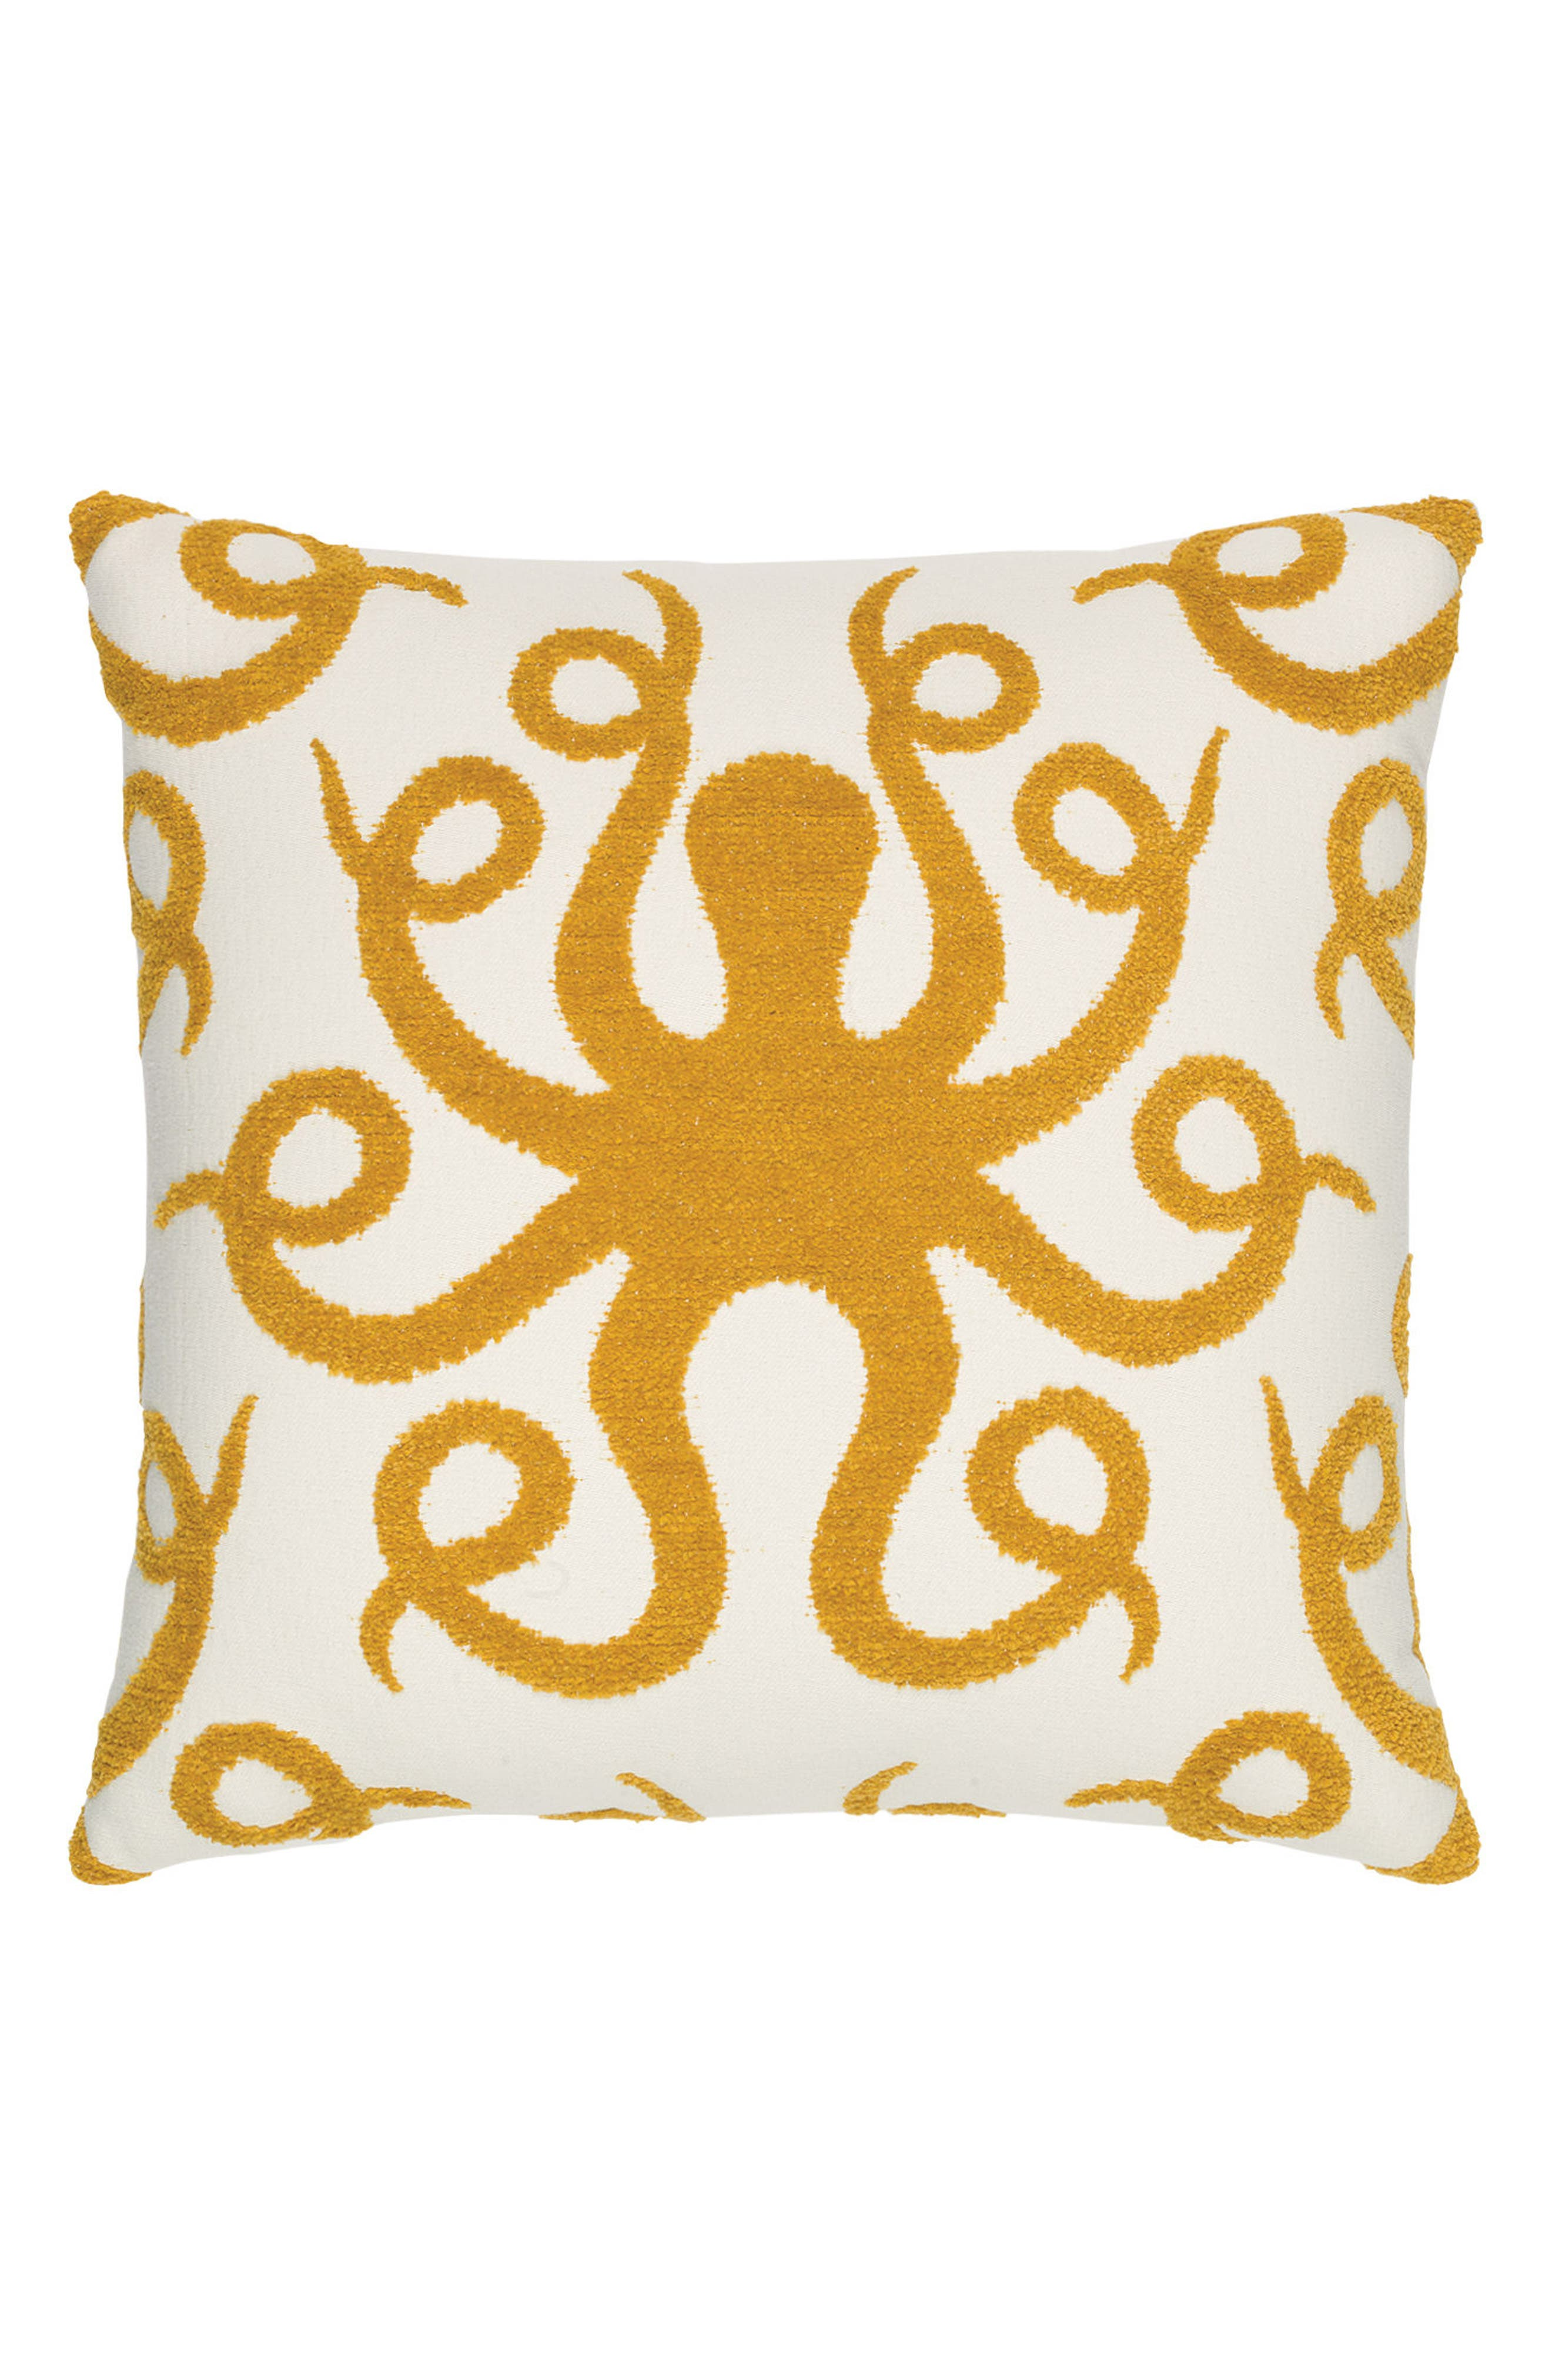 Octoplush Indoor/Outdoor Accent Pillow,                             Main thumbnail 1, color,                             Gold/ White